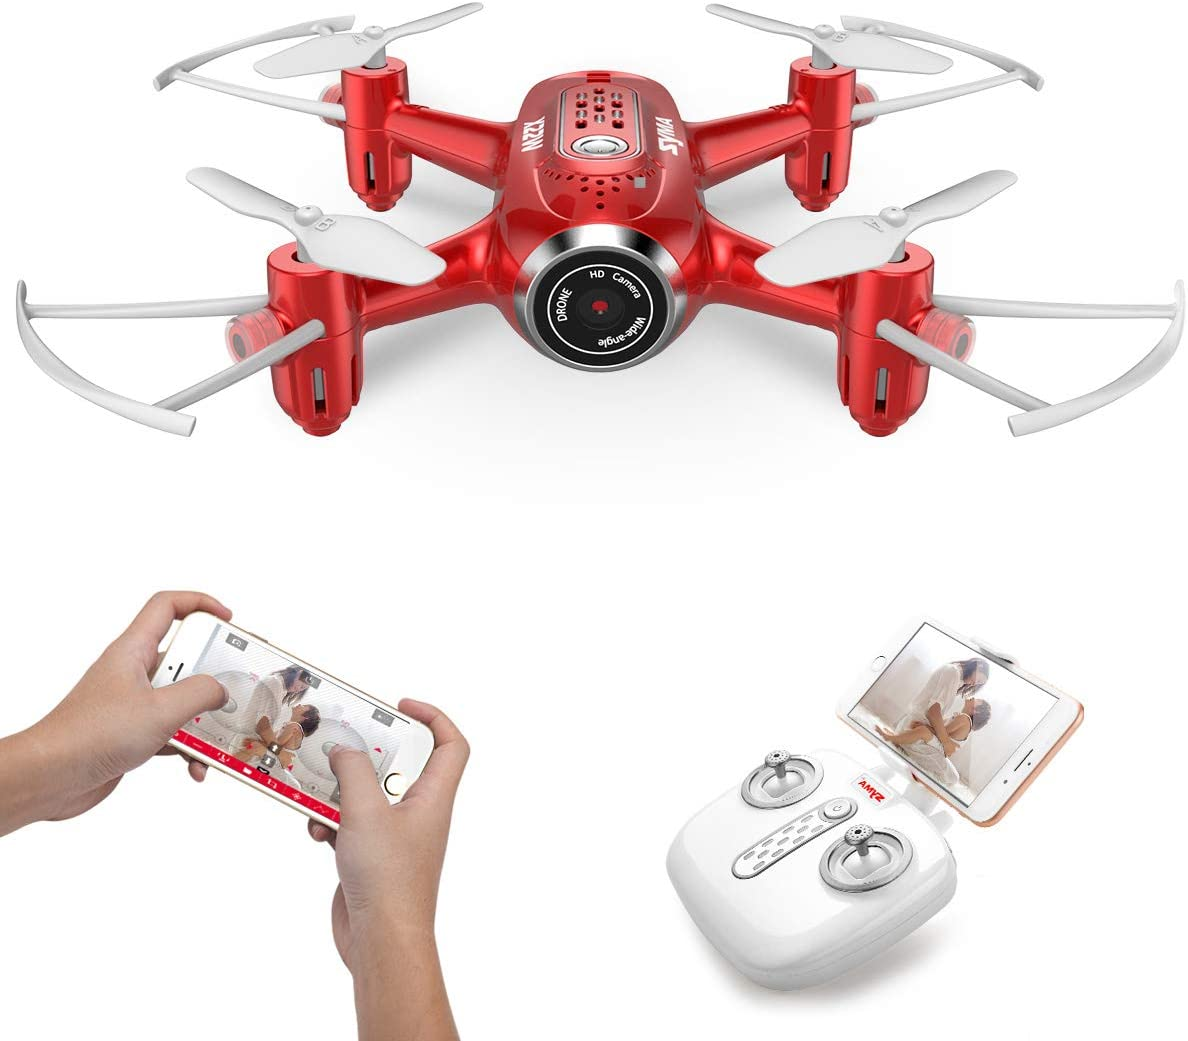 Headless Mode 3D Flips Syma X300 Foldable Drone with Camera for Adults 1080P FHD FPV Live Video Quadcopter for Kids Beginners Tap Fly Optical Flow Positioning 2 Batteries 40mins Altitude Hold